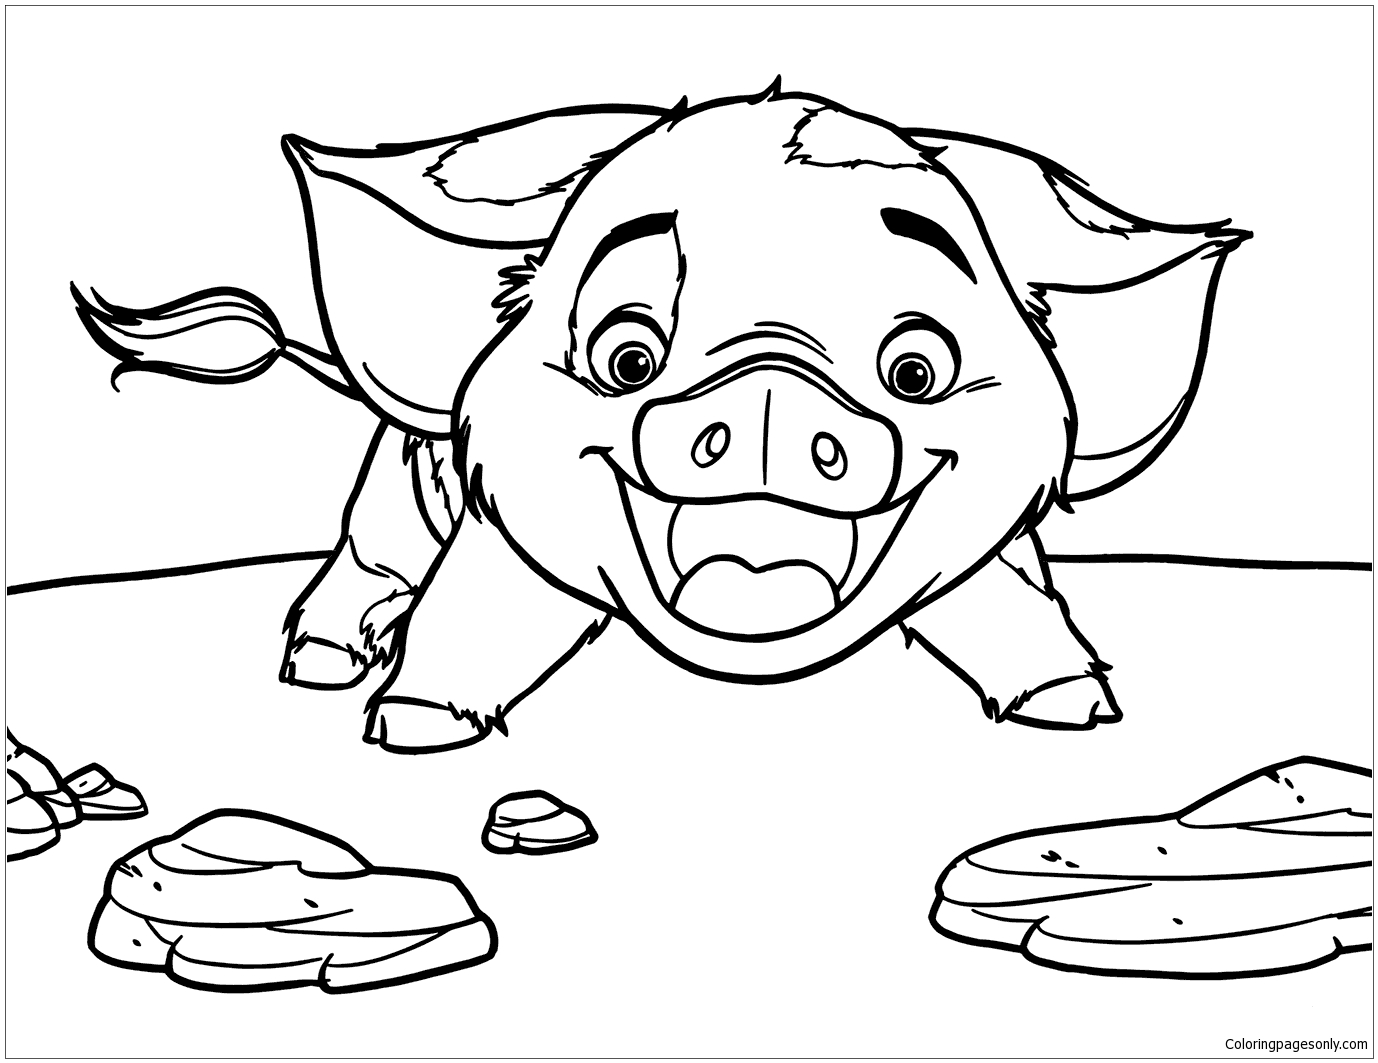 Pua Pig From Moana 5 Coloring Page